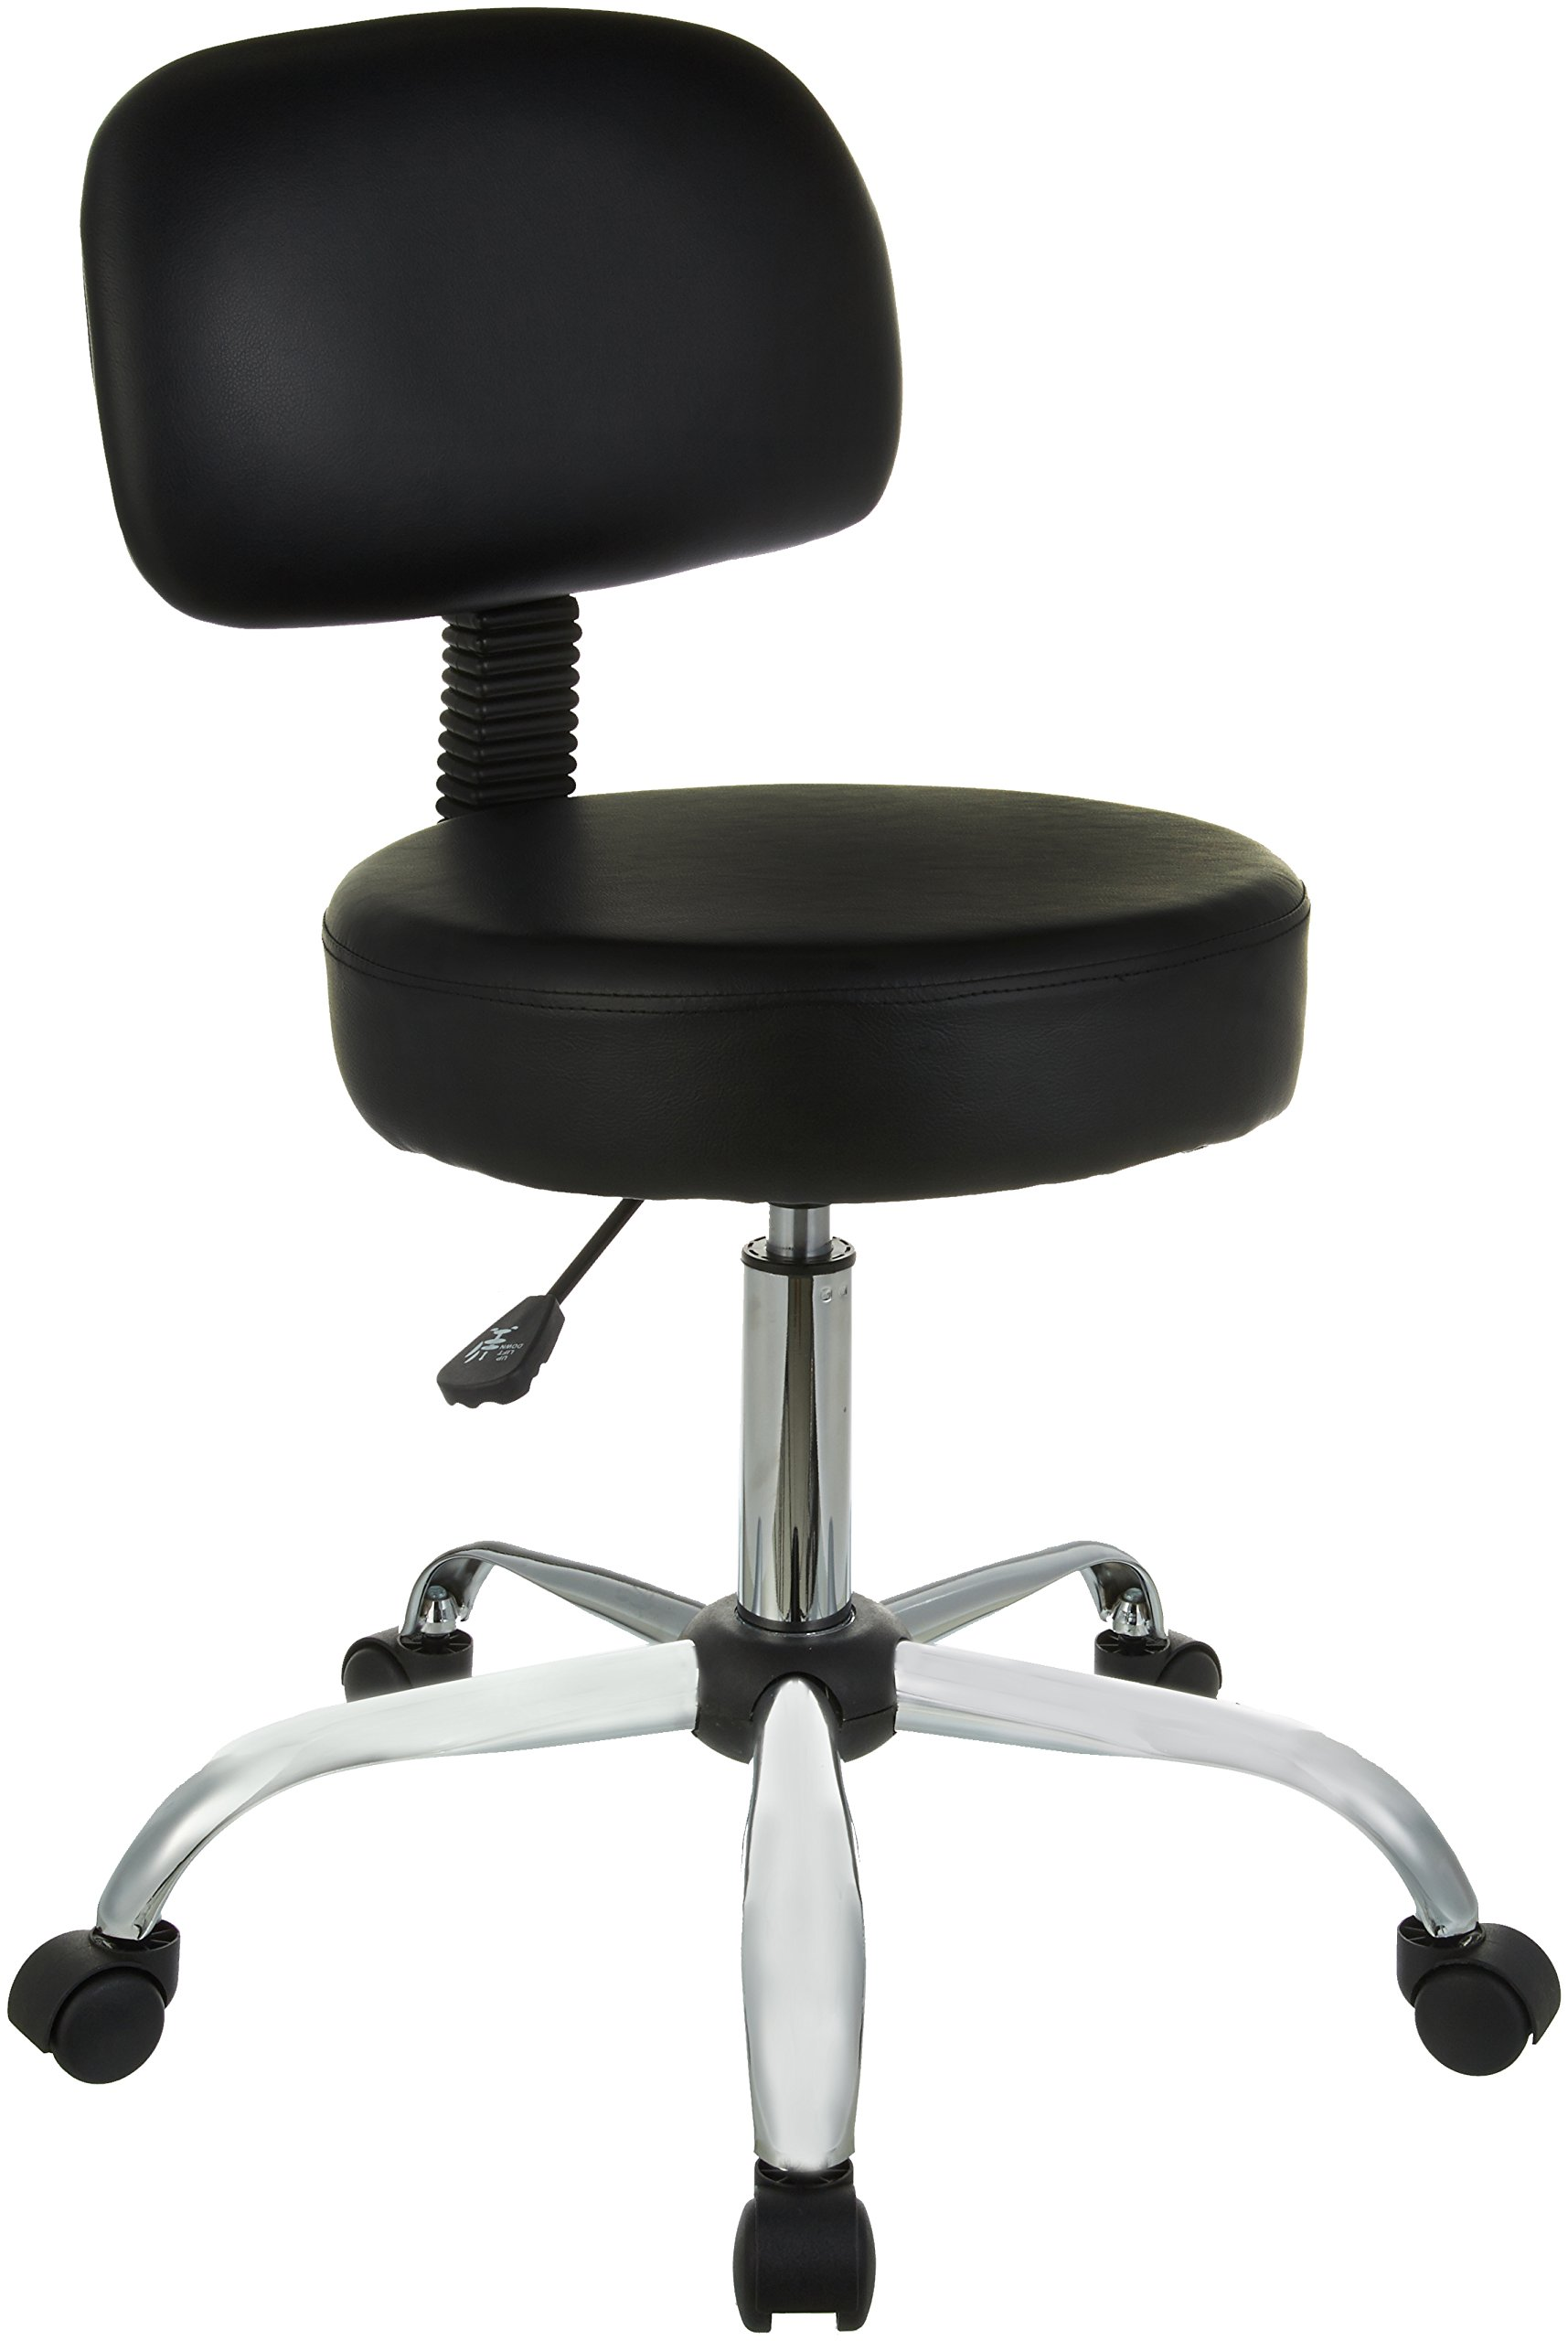 AmazonBasics Drafting Stool with Back Cushion - Black